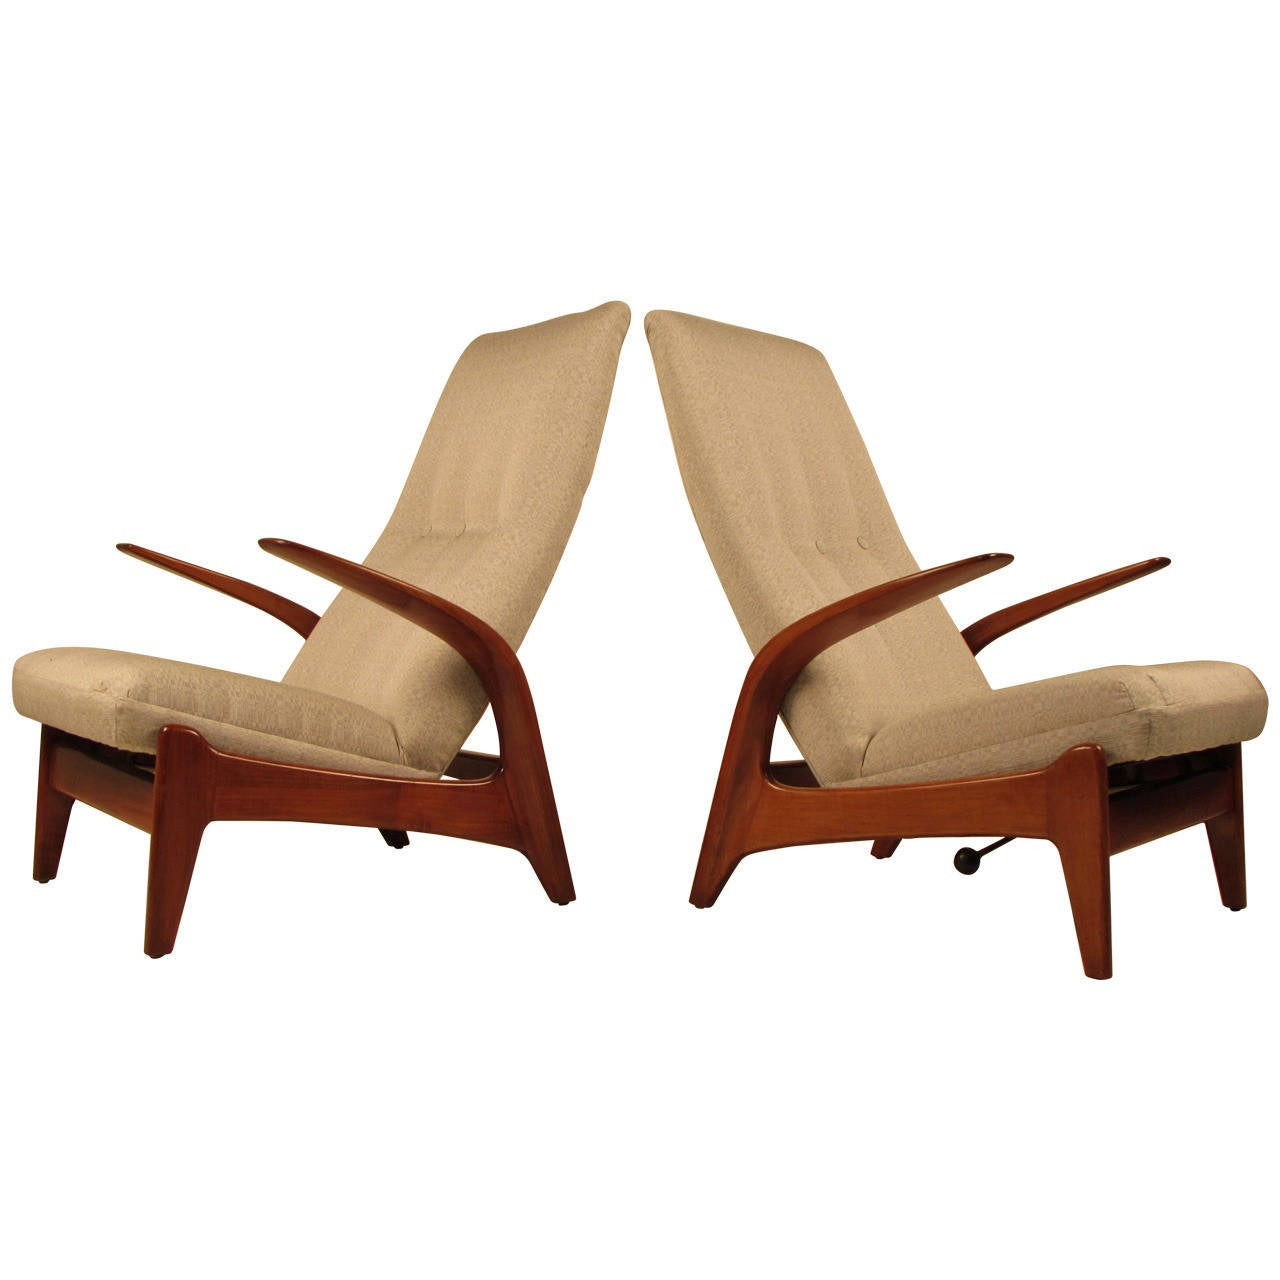 Rare Pair Of Sculptural Gimson And Slater Rock N Rest